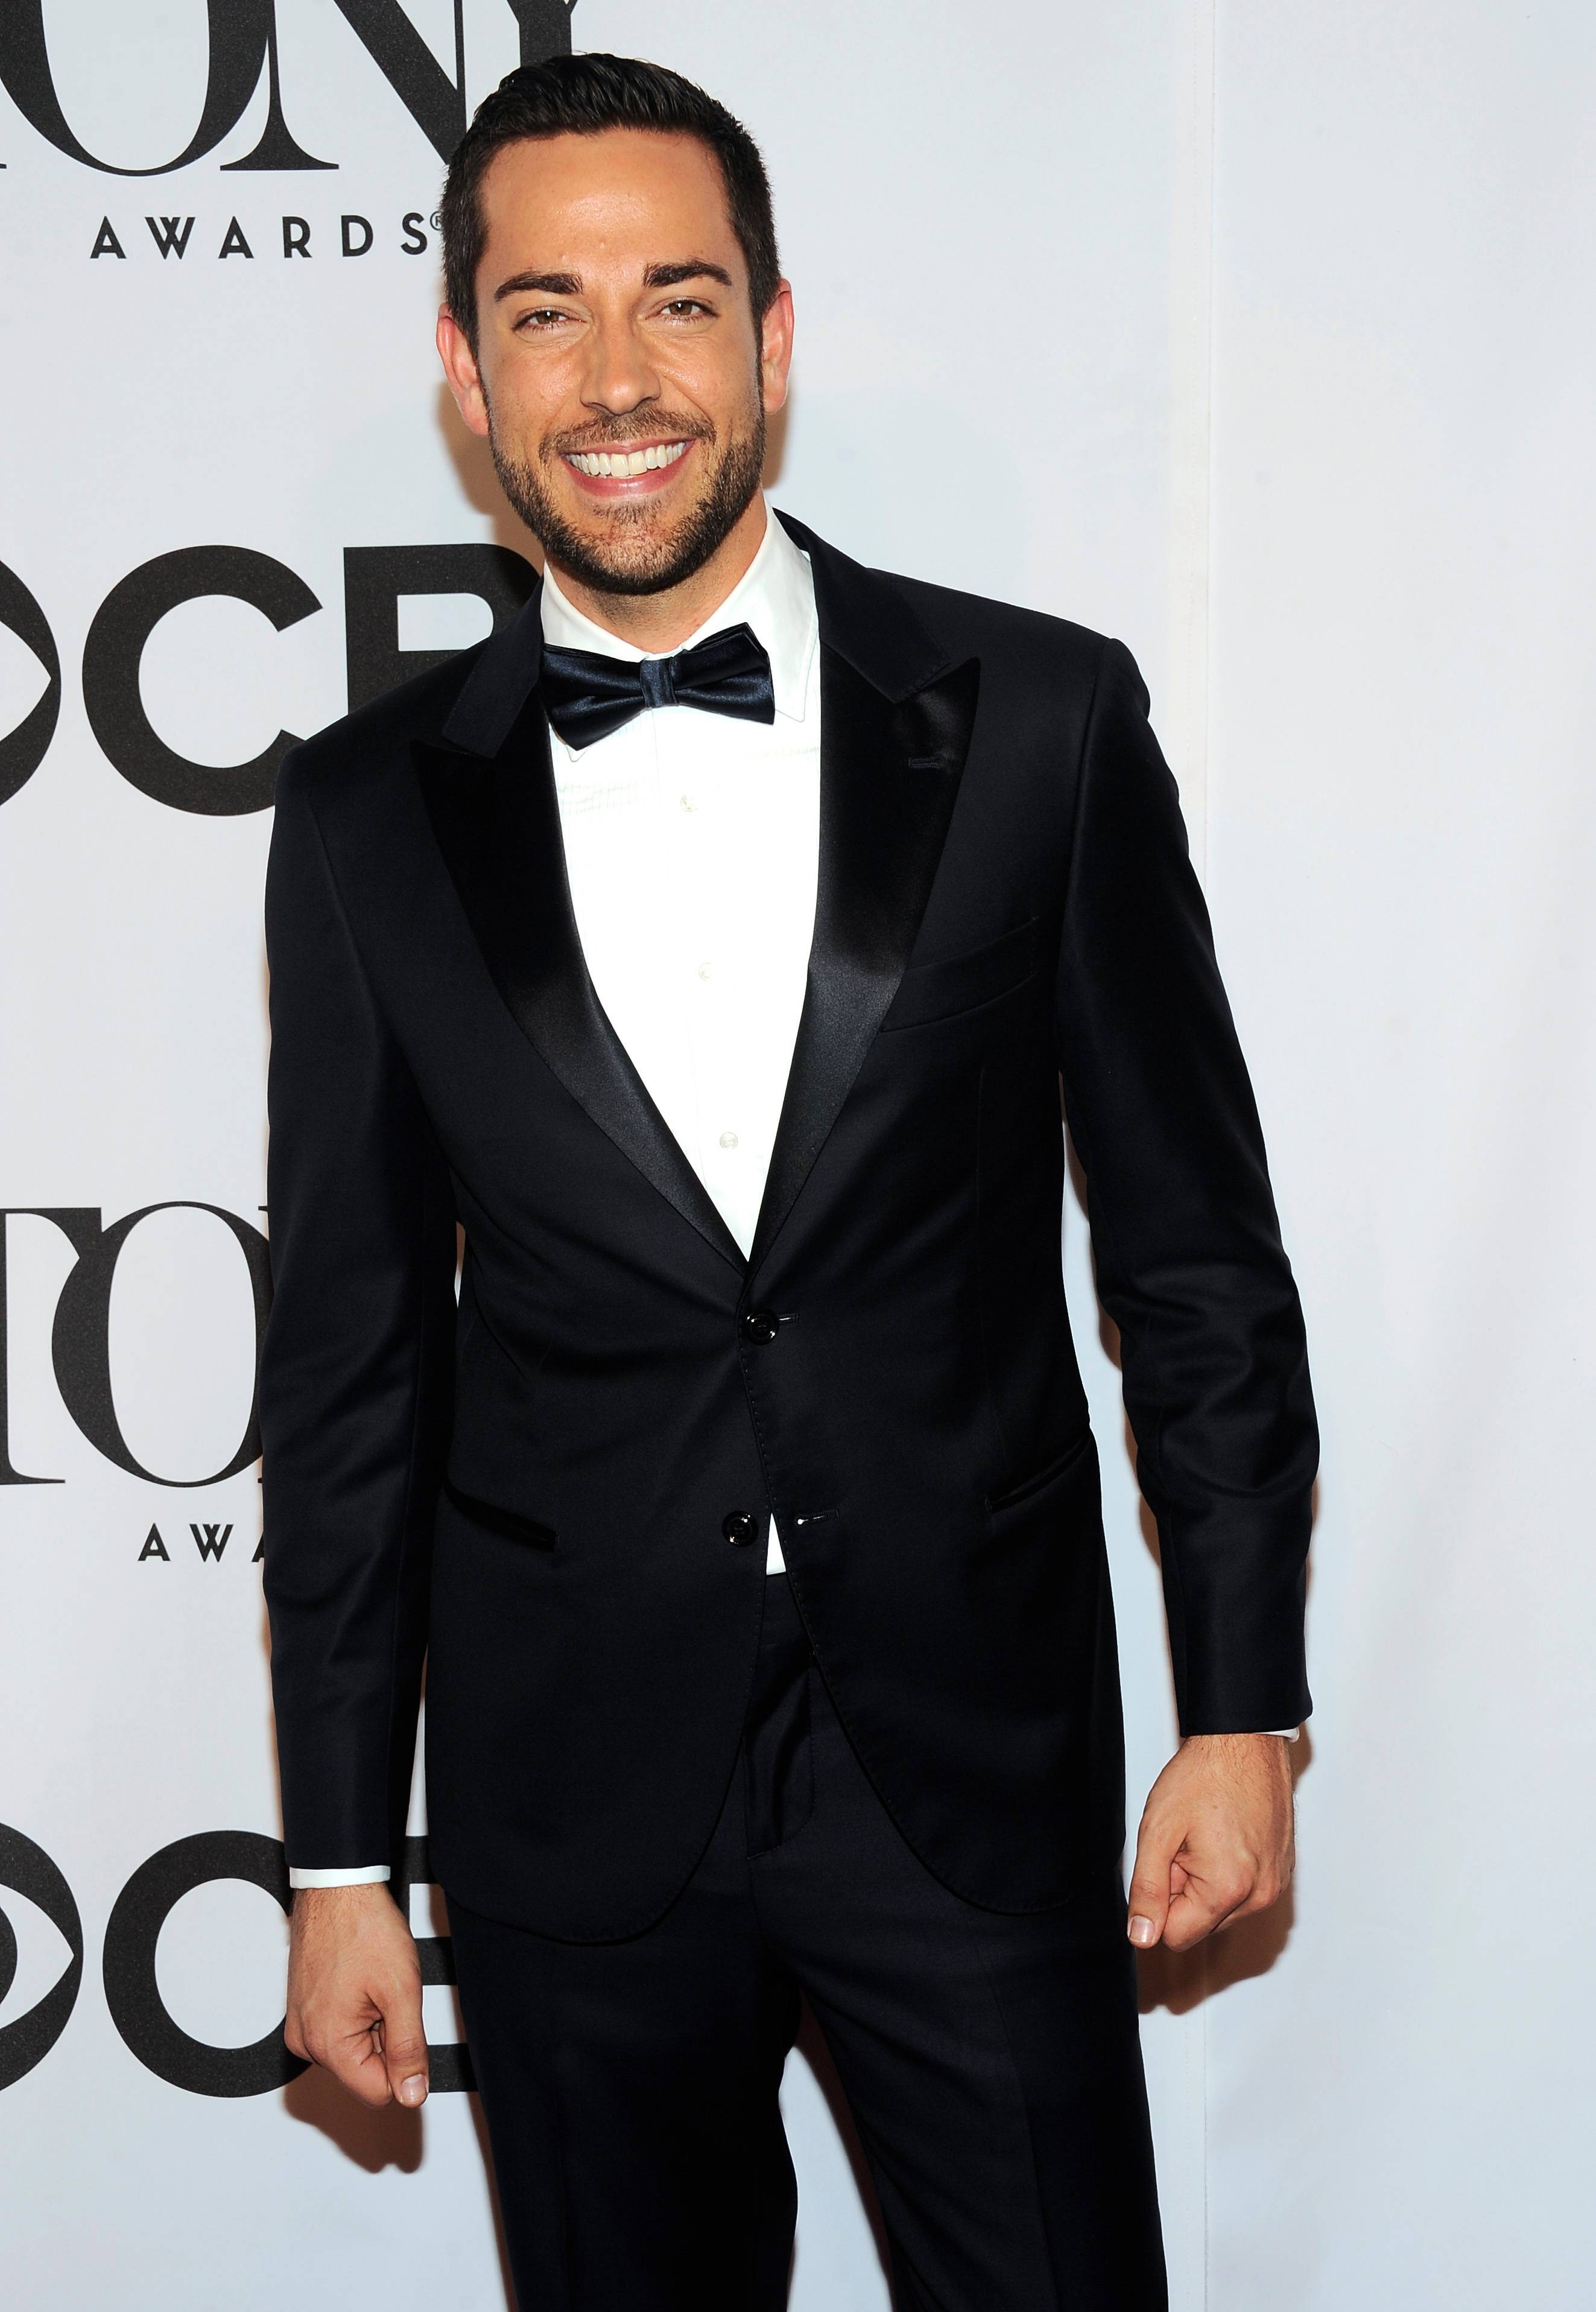 Zachary Levi arrives at the 68th annual Tony Awards at Radio City Music Hall on Sunday.